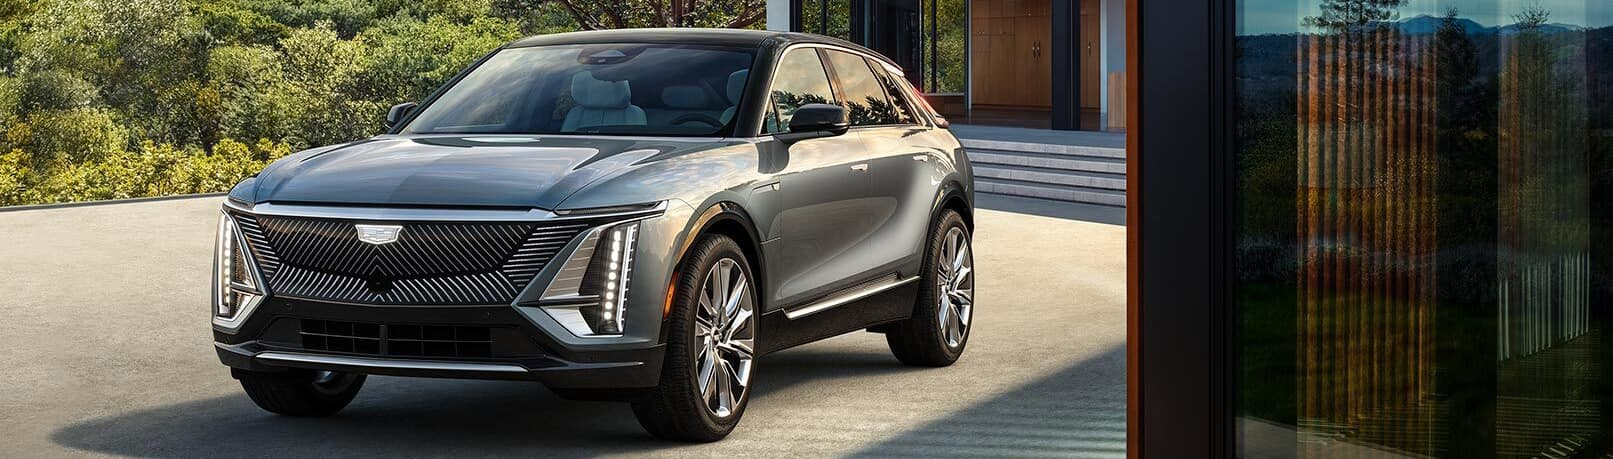 2023 Cadillac Lyriq in silver in front of a building.